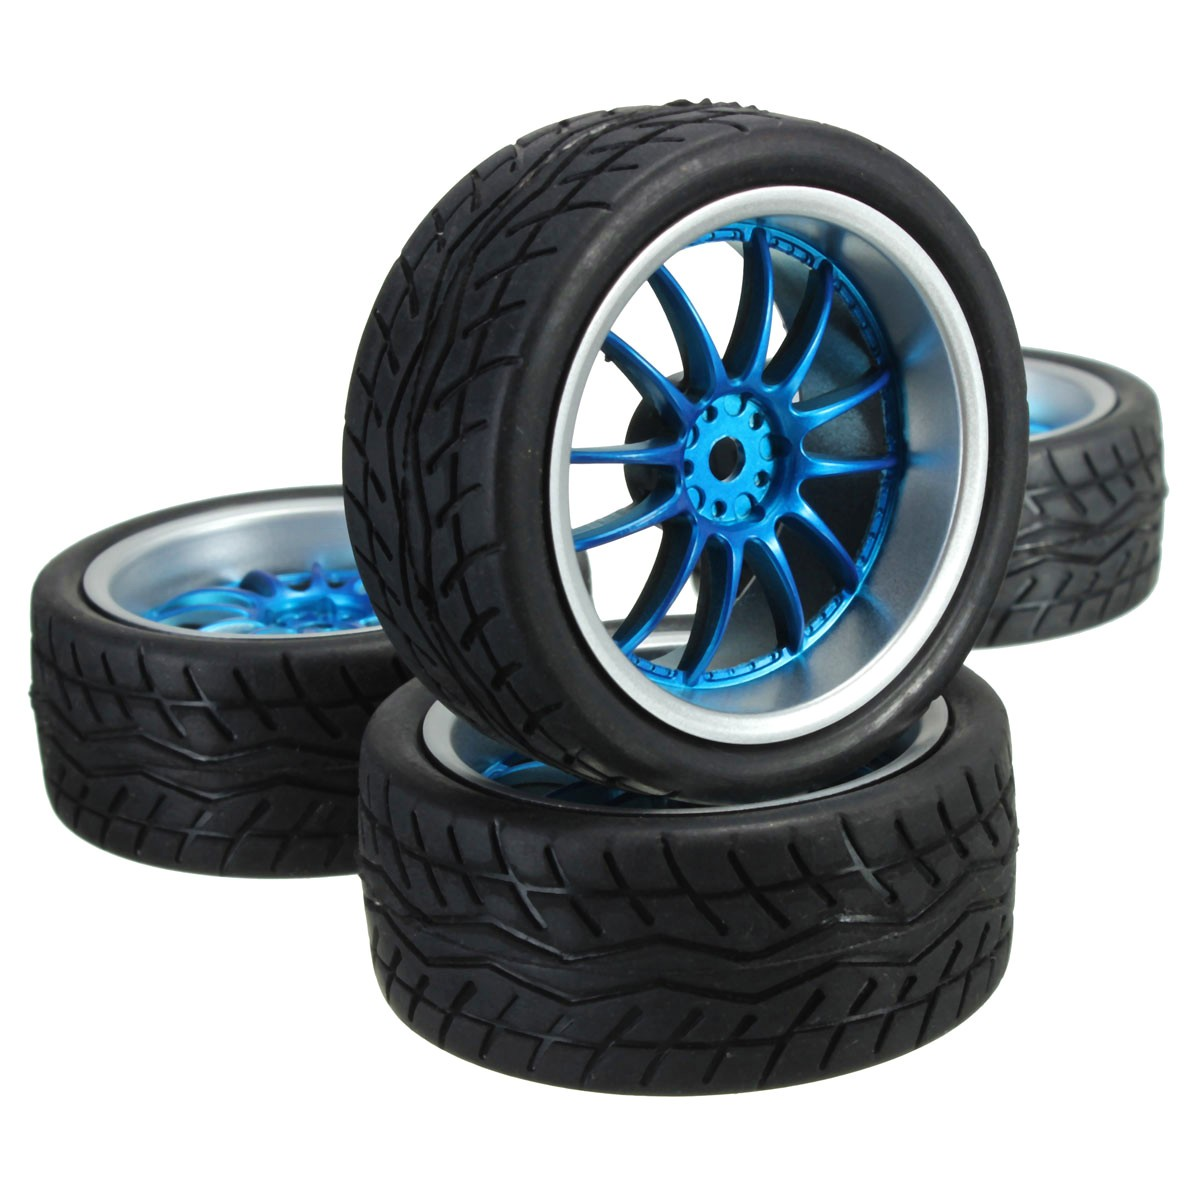 4Pcs Rubber RC Flat Racing Tires Tyre Wheel 12-spoke Wheel Rim For 1:10 On-Road Intelligent Model Car 4pcs 1 9 rubber tires